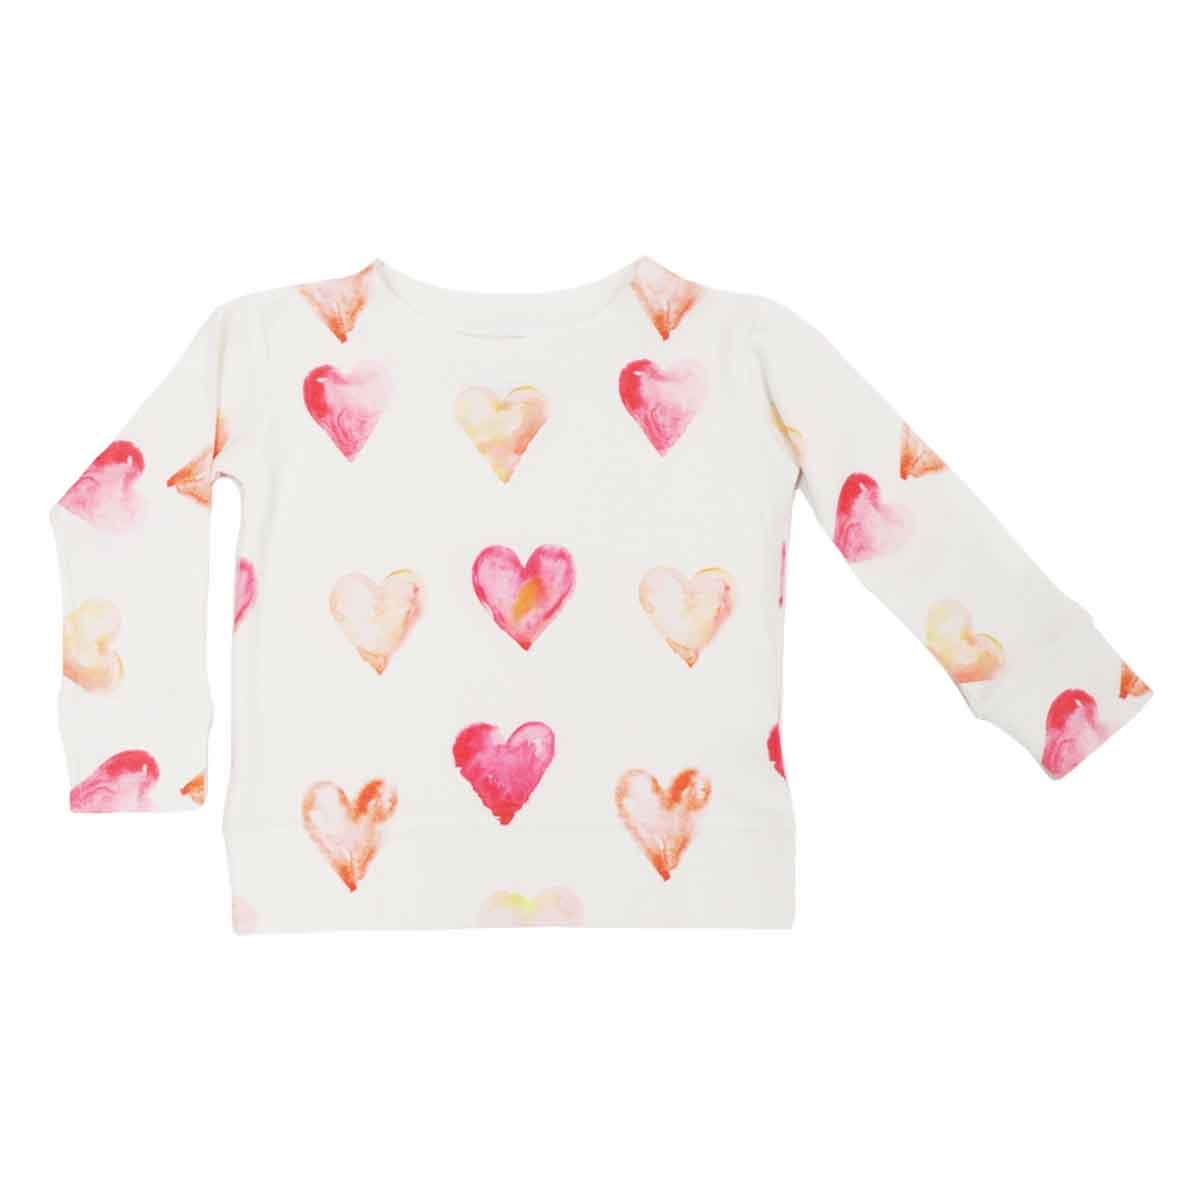 Brokedown Kids Sweatshirt in White with Pink Hearts